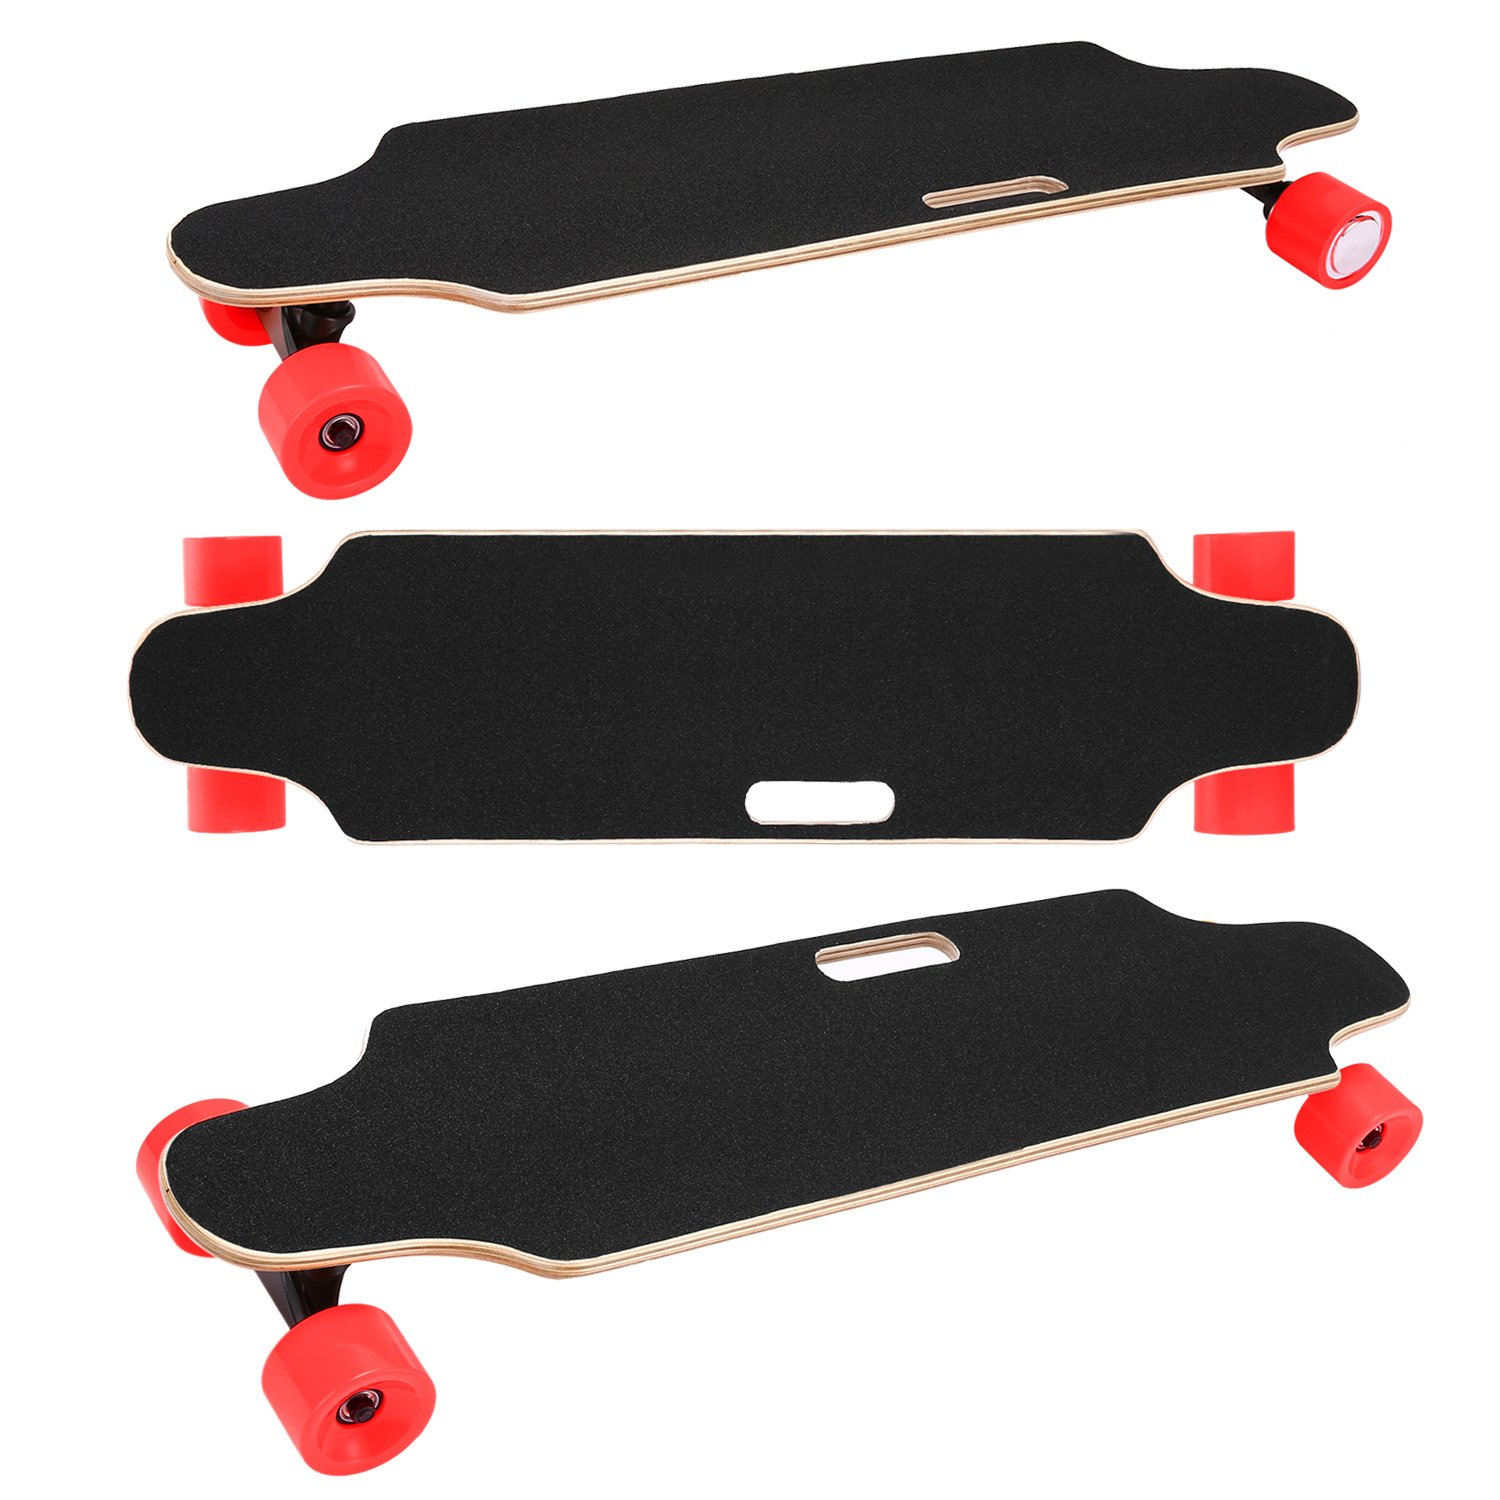 12 MPH Top Speed 10 Miles Range US Stock 7 Layers Maple Longboard shaofu Electric Skateboard Youth Electric Longboard with Wireless Remote Control